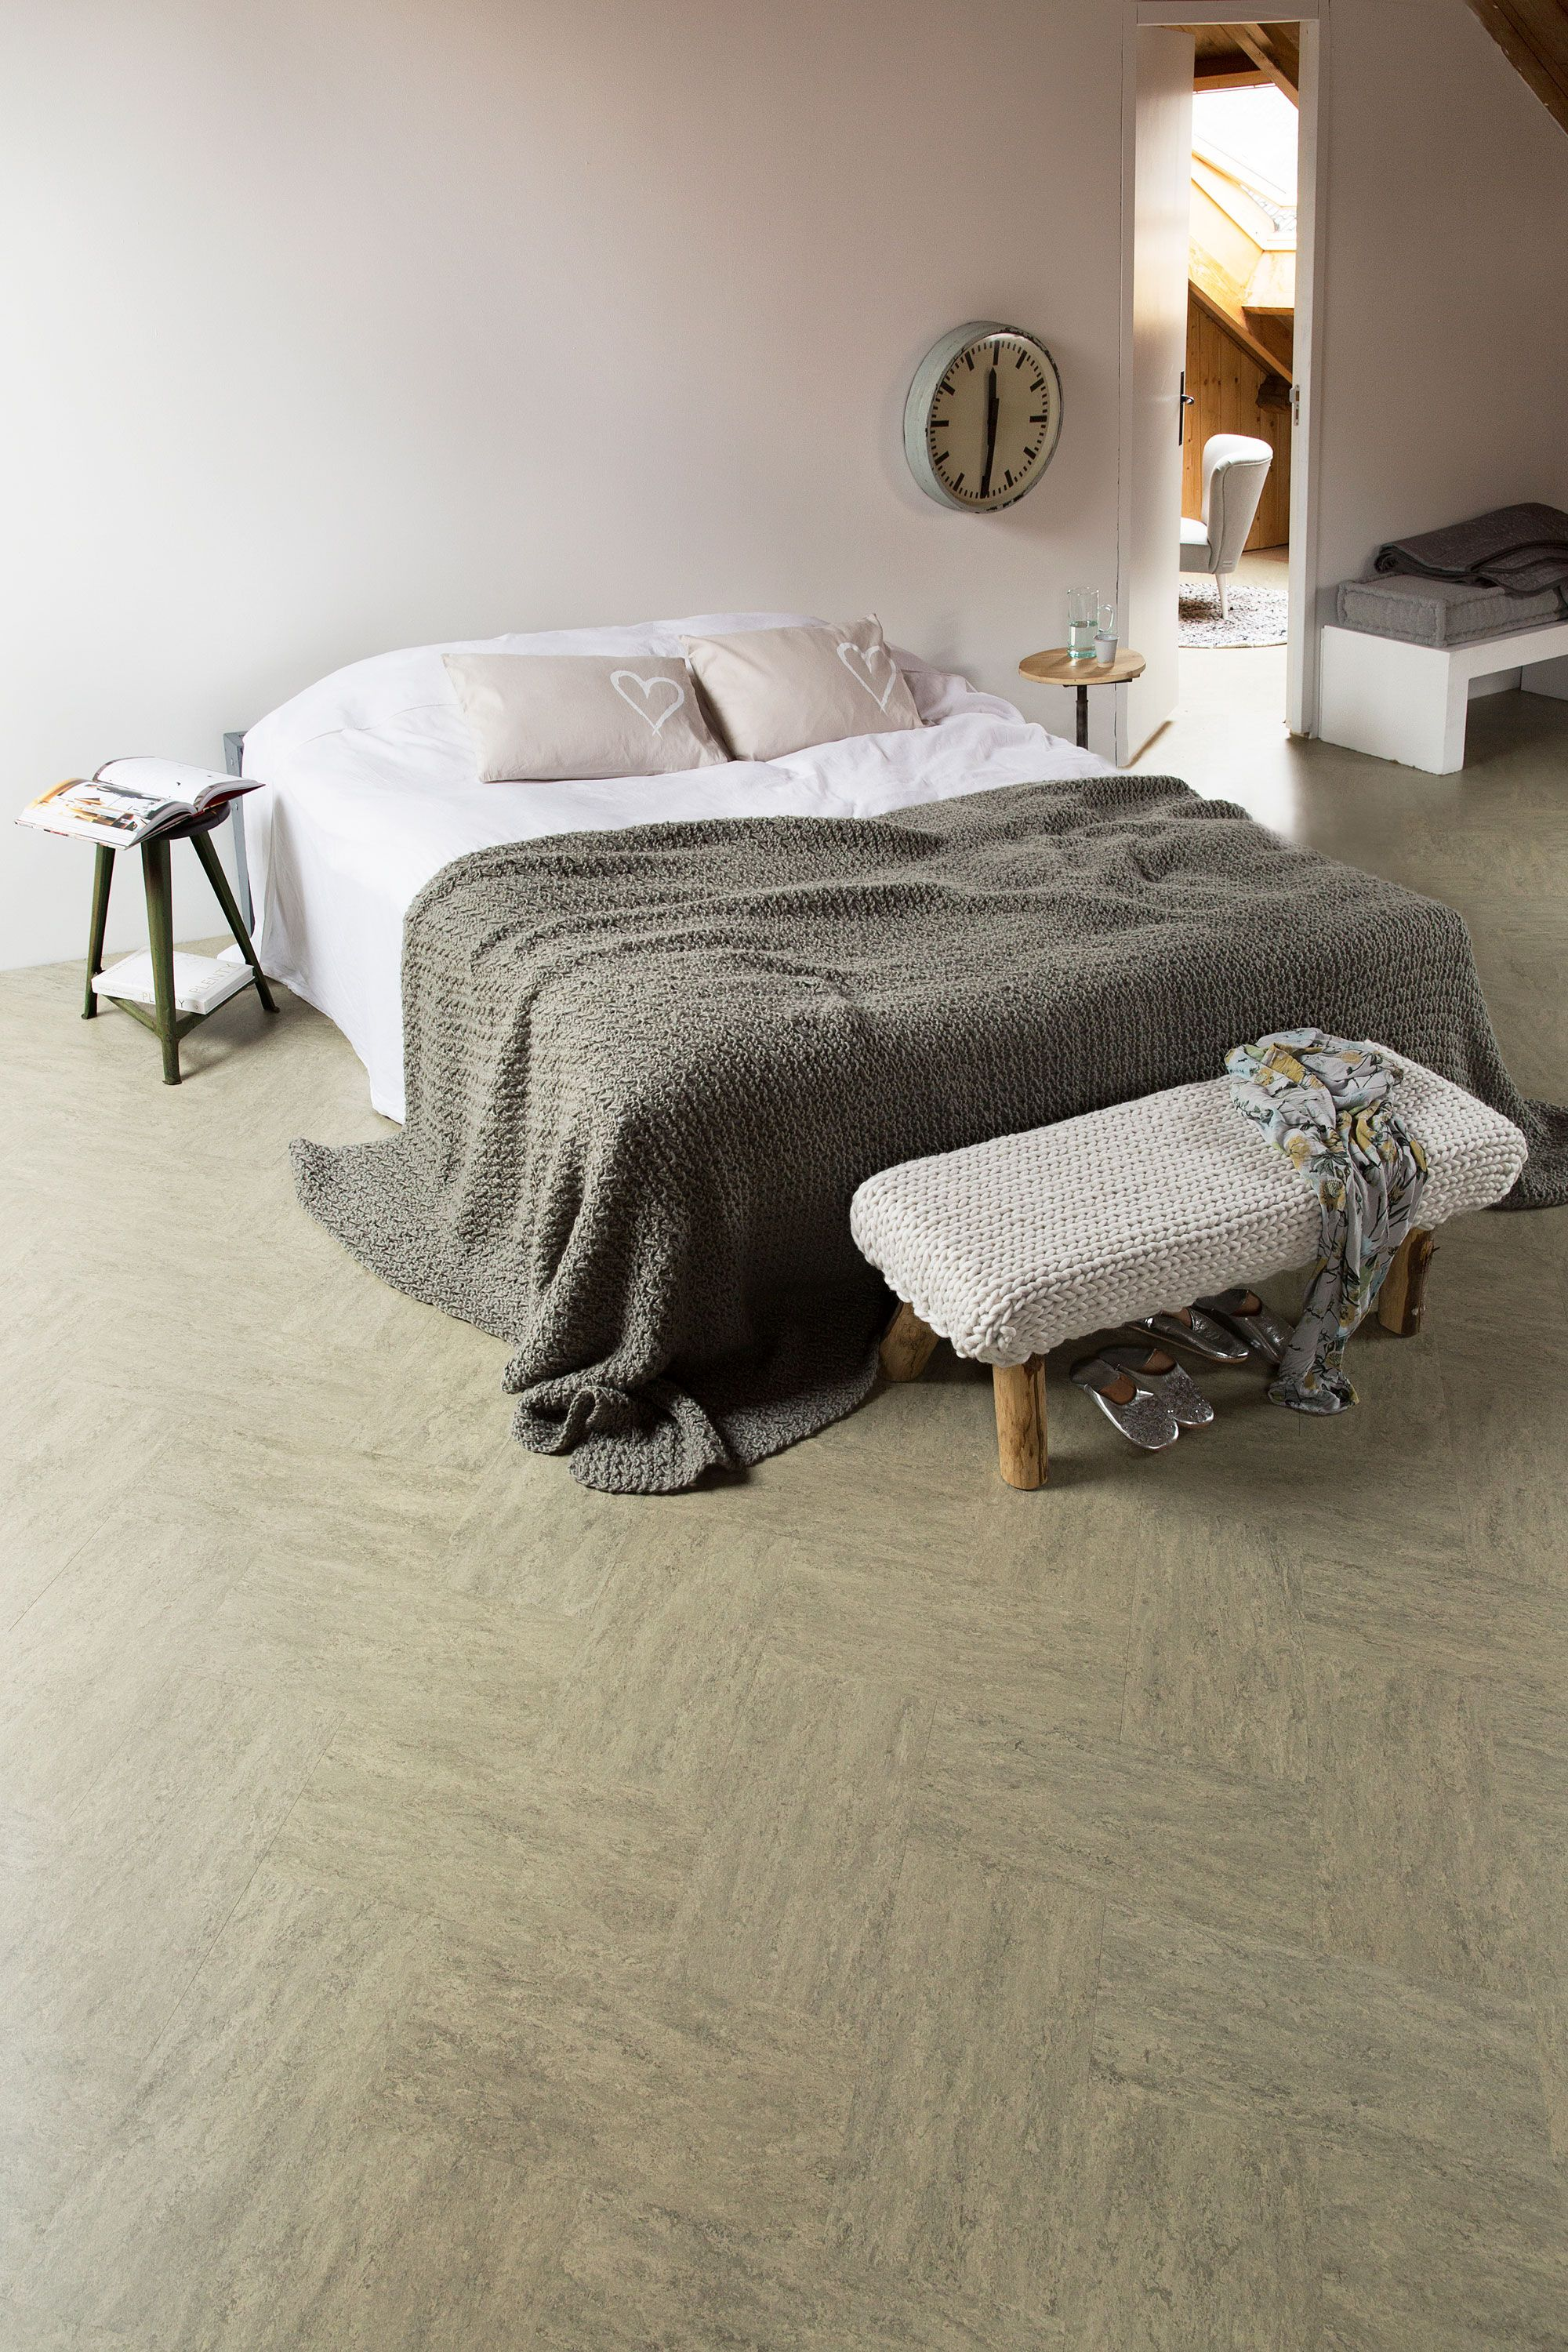 Bedroom With Marmoleum Marble Floor And A Cozy Bed With Pillow And Coverlet Photographer